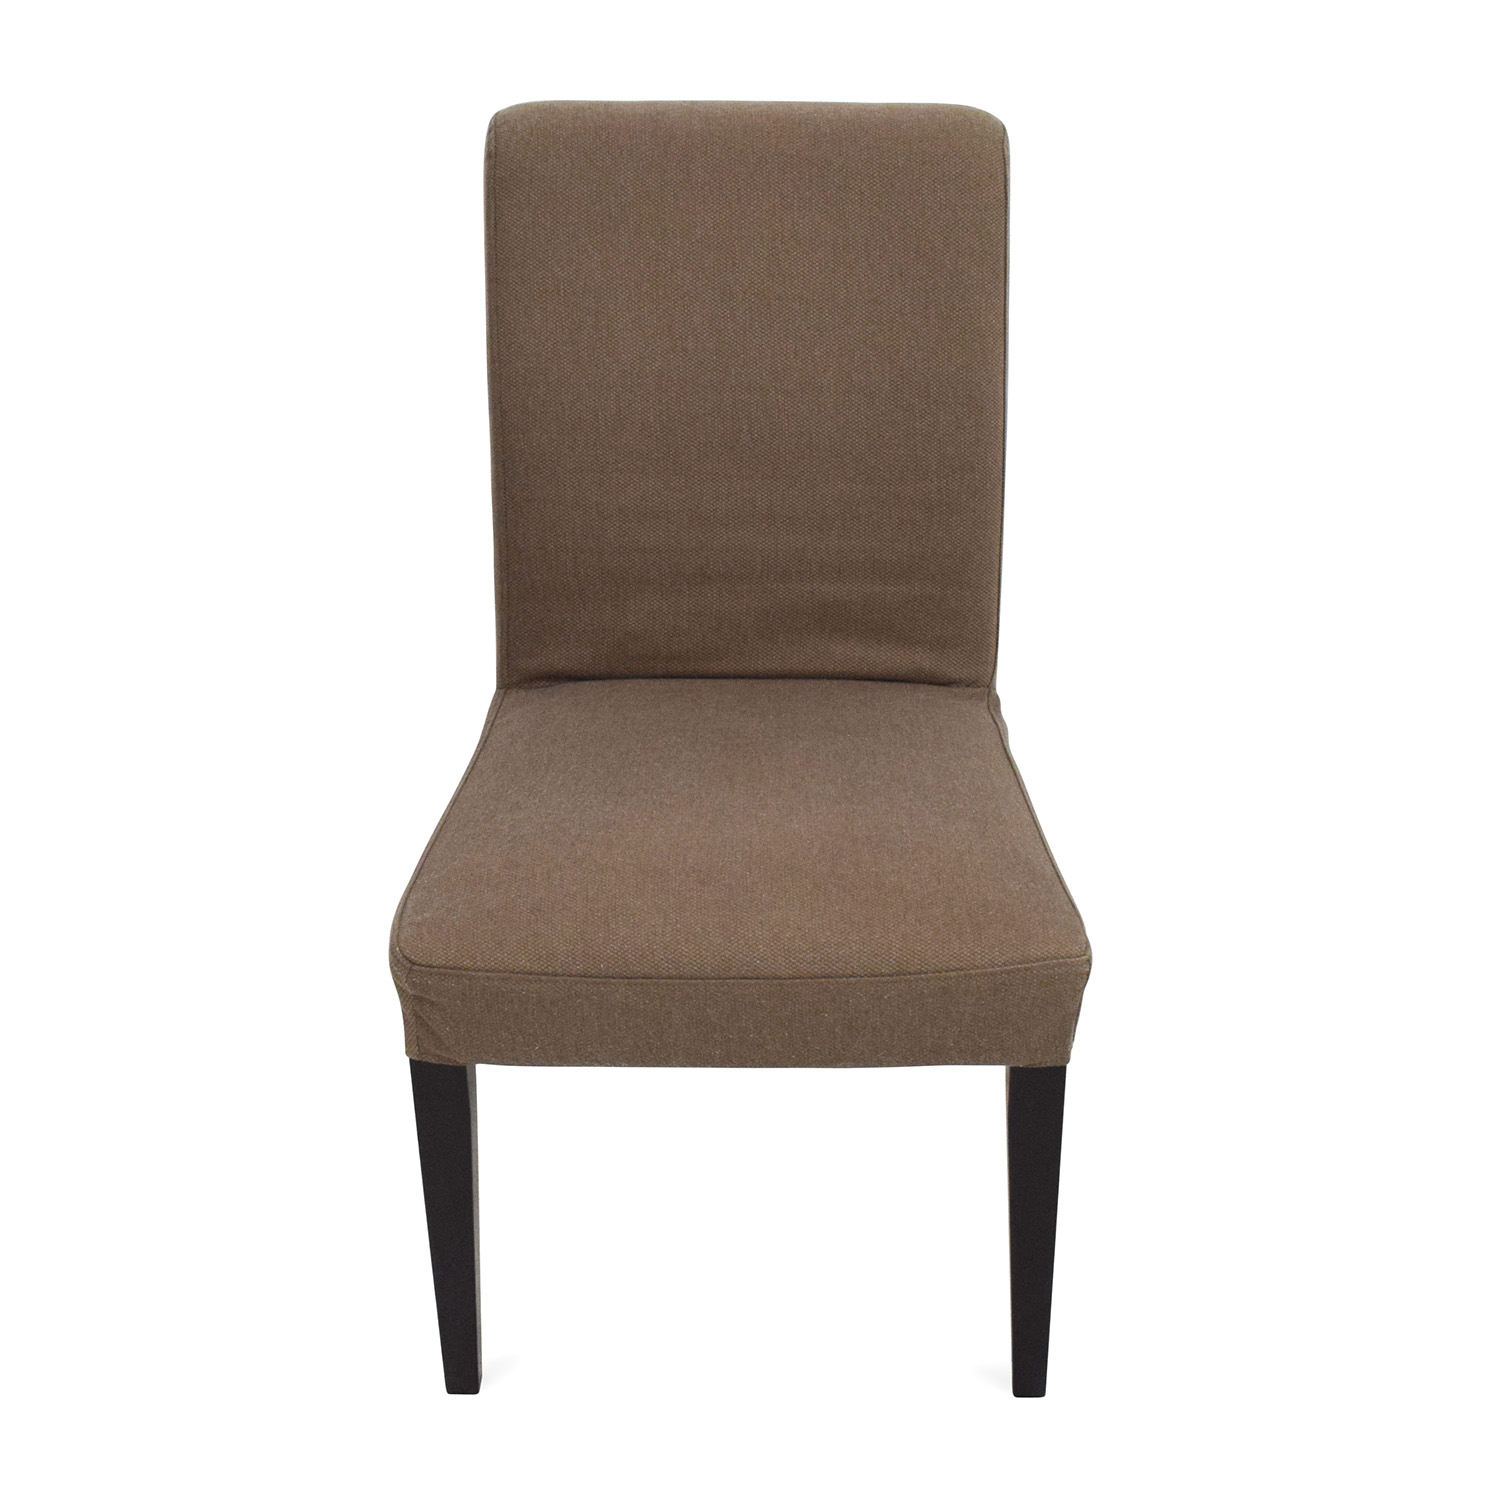 ikea chair covers henriksdal ebay folding mitre 10 78 off chairs